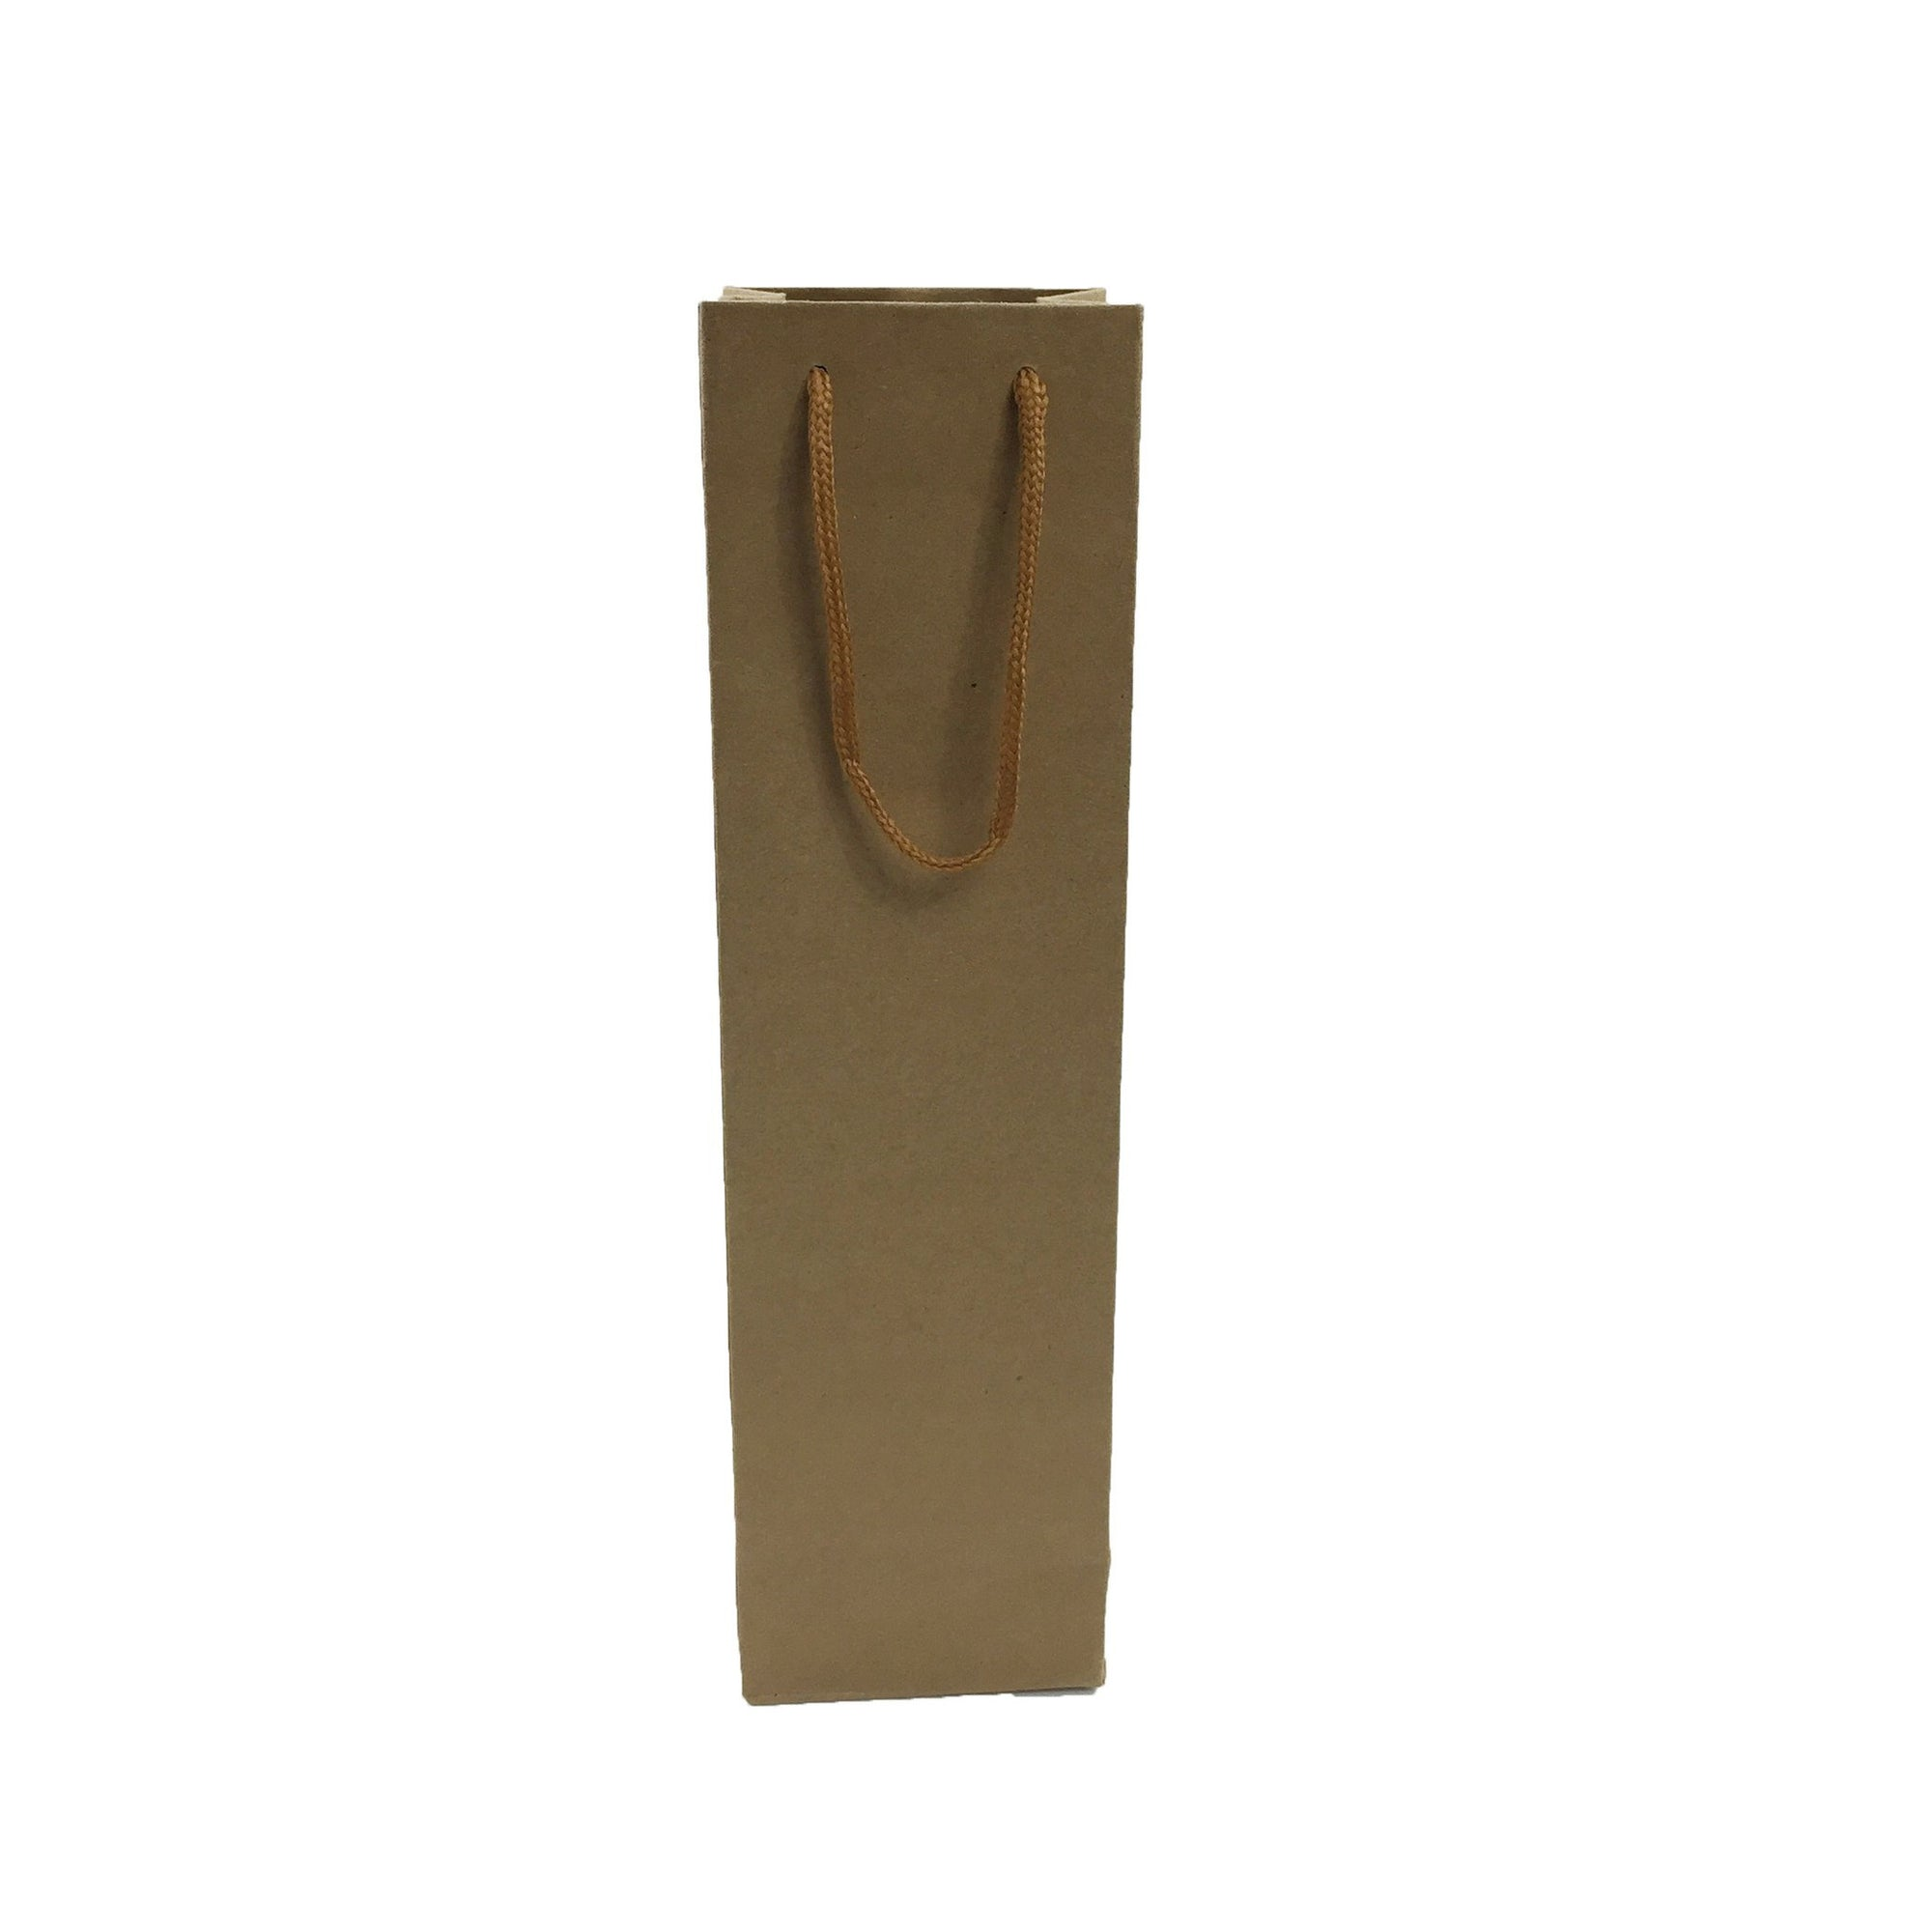 Kraft  Paper 1 Bottle Bag-Brown((KP-06) - greenpac.com.au